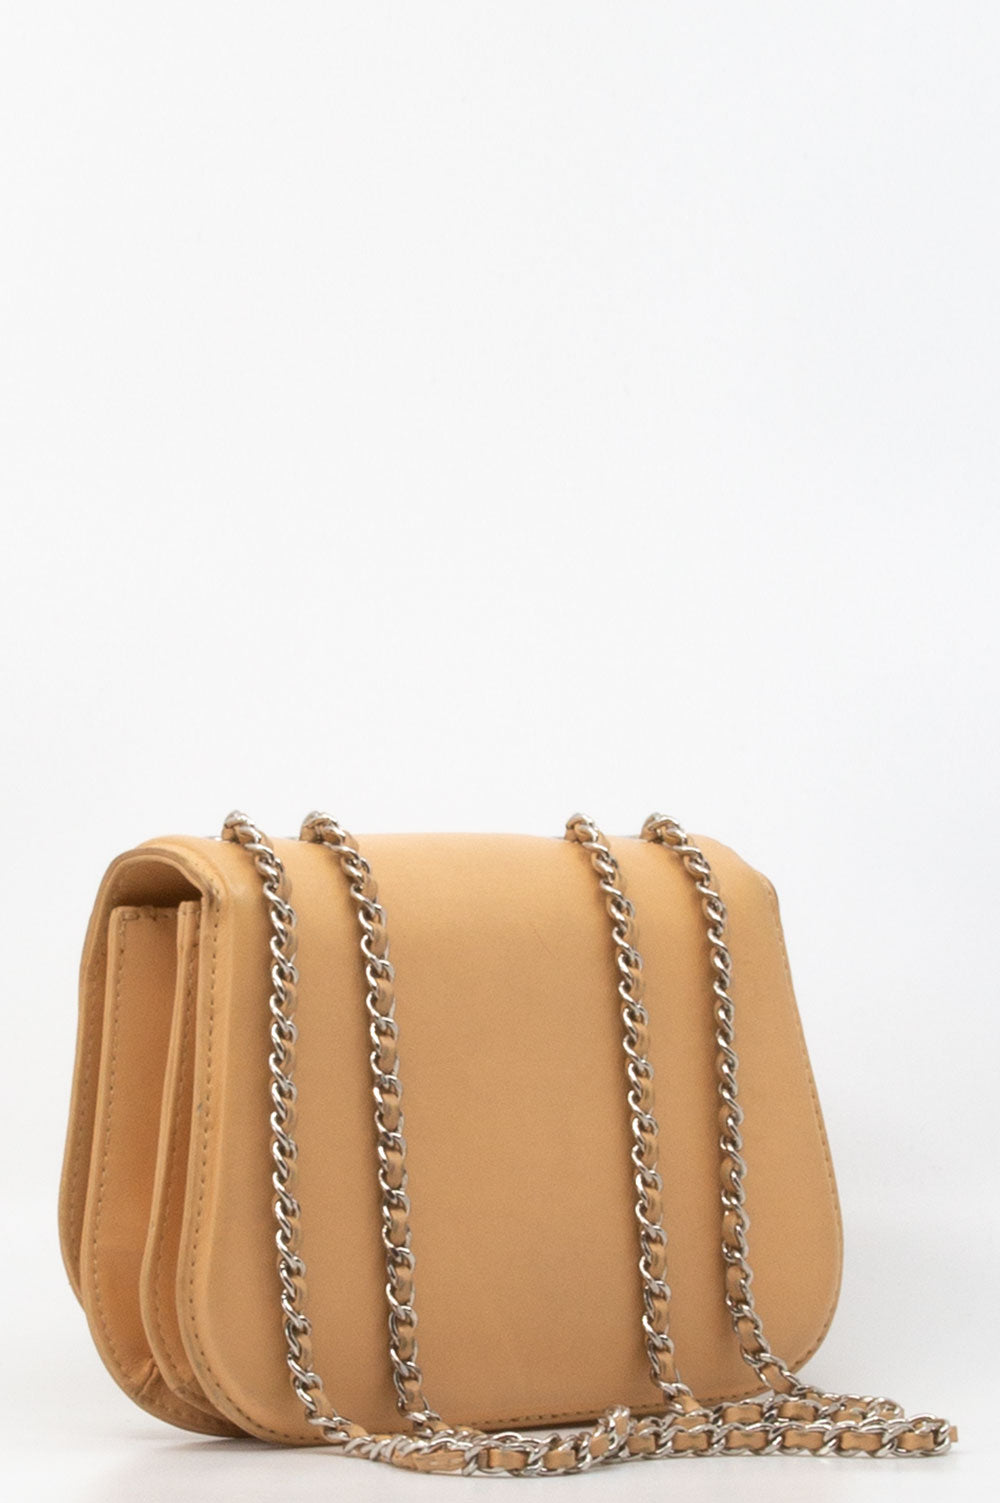 CHANEL Flap Chain Bag